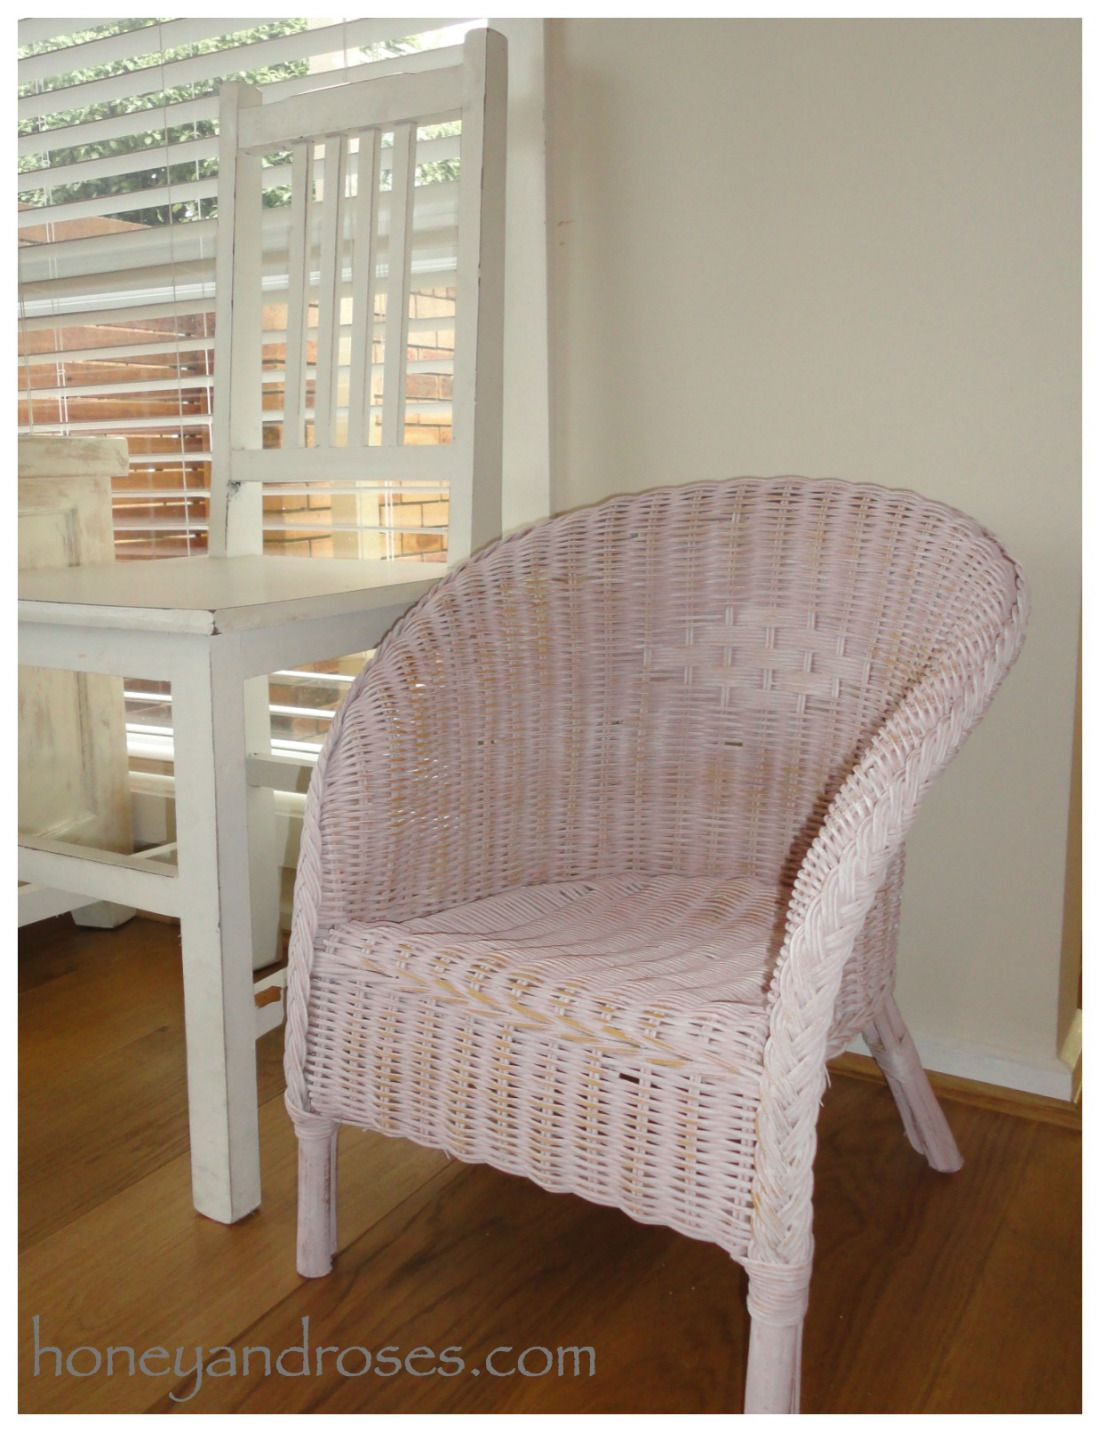 Wicker Chairs Indoor How To Paint A Wicker Chair With Chalk Paint Furniture Wicker